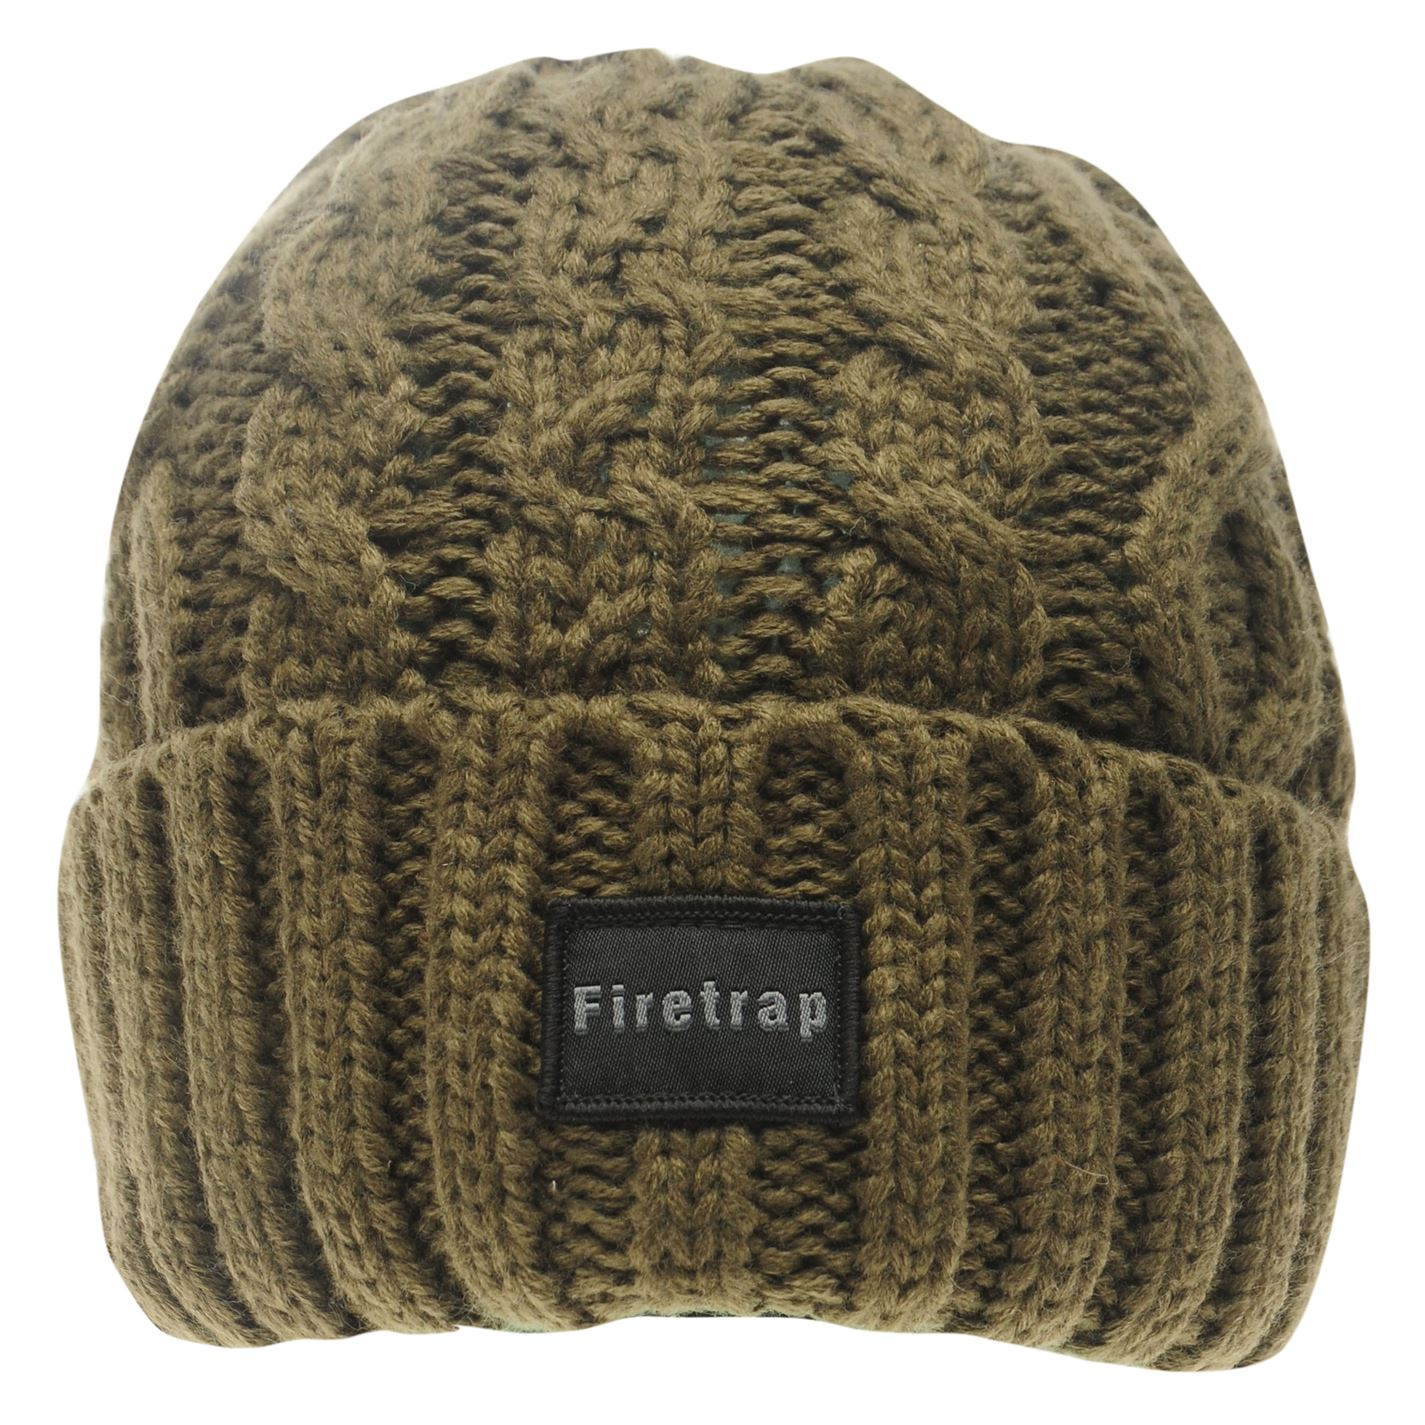 Mens-Firetrap-Cable-Beanie-Pattern-New thumbnail 9